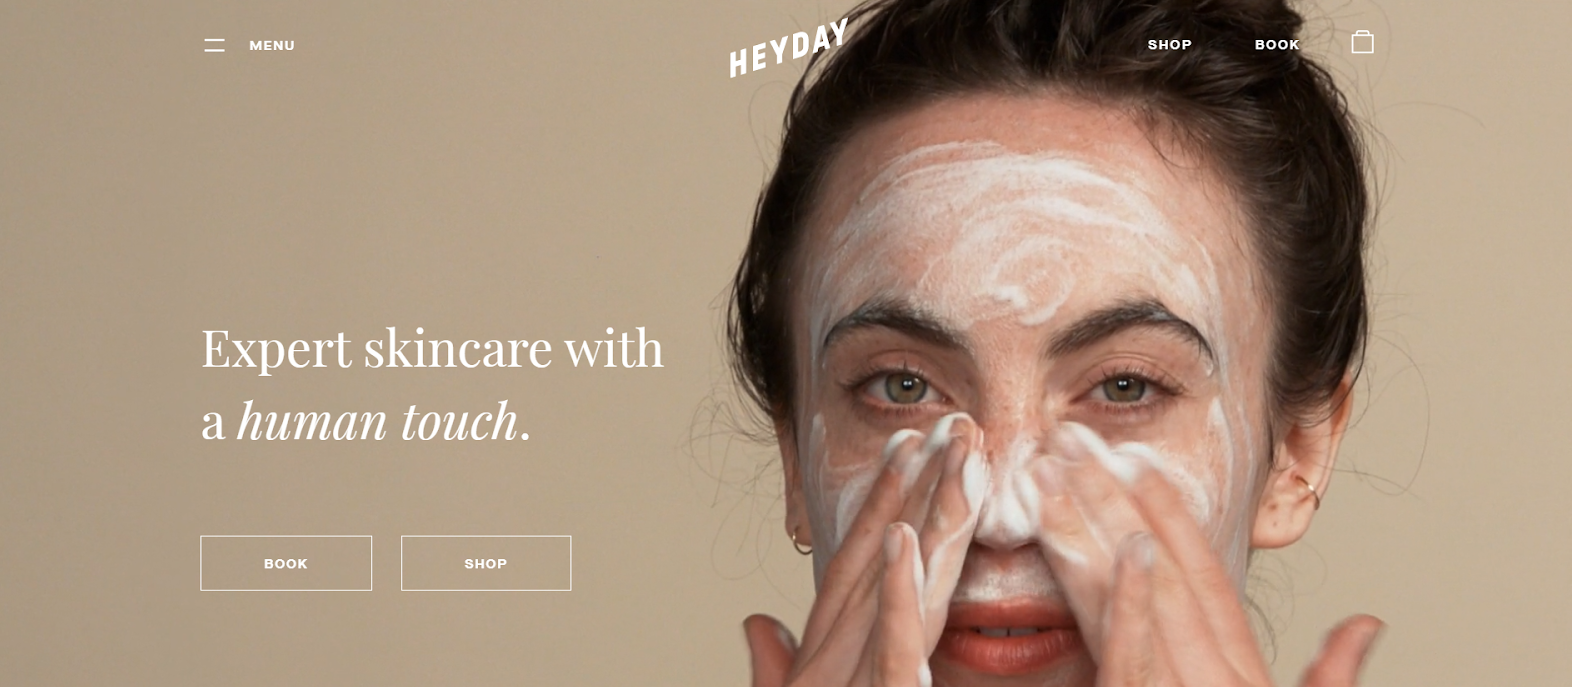 website with woman cleaning face